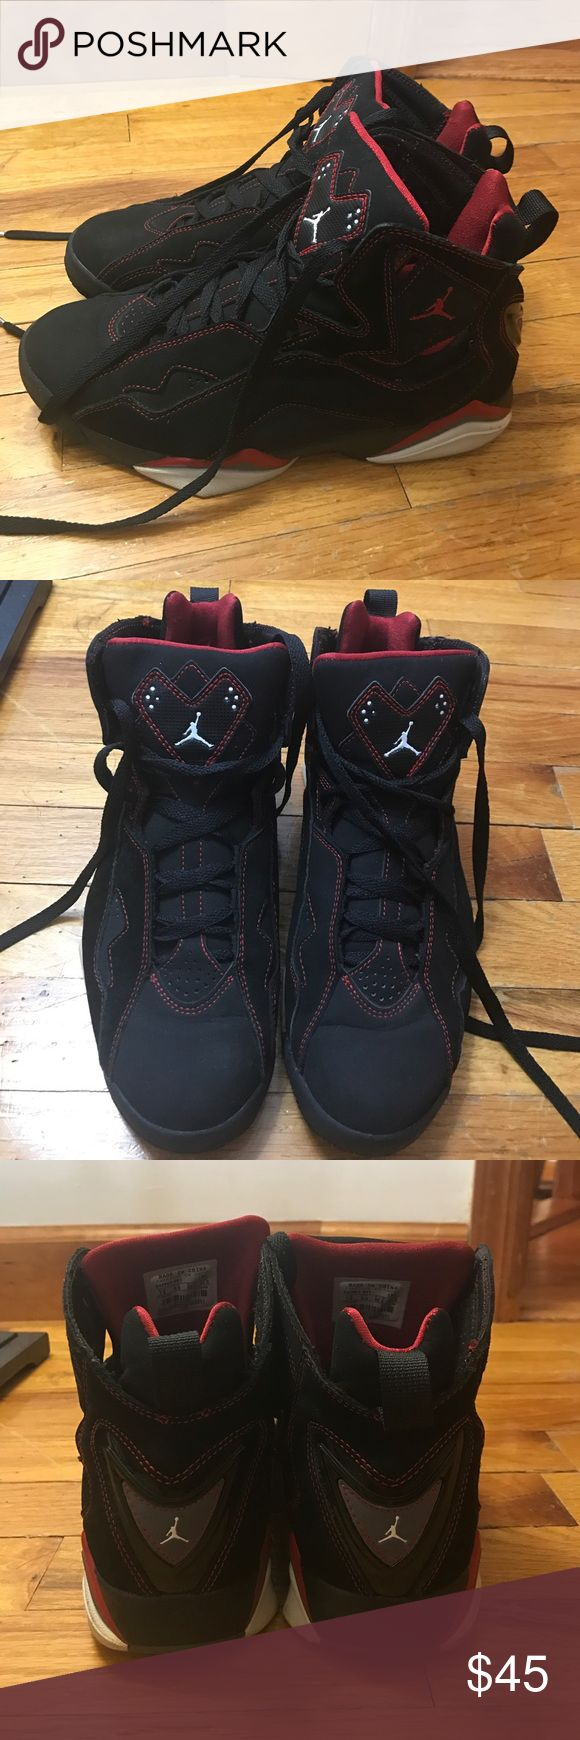 Black and Red Jordan True Flight Black and varsity red Jordan's true flight. I have worn these shoes so the bottoms aren't mint condition but they are still really good condition! Size is 7.5 MENS. **REPOSTING because I accidentally deleted the original post** Jordan Shoes Sneakers